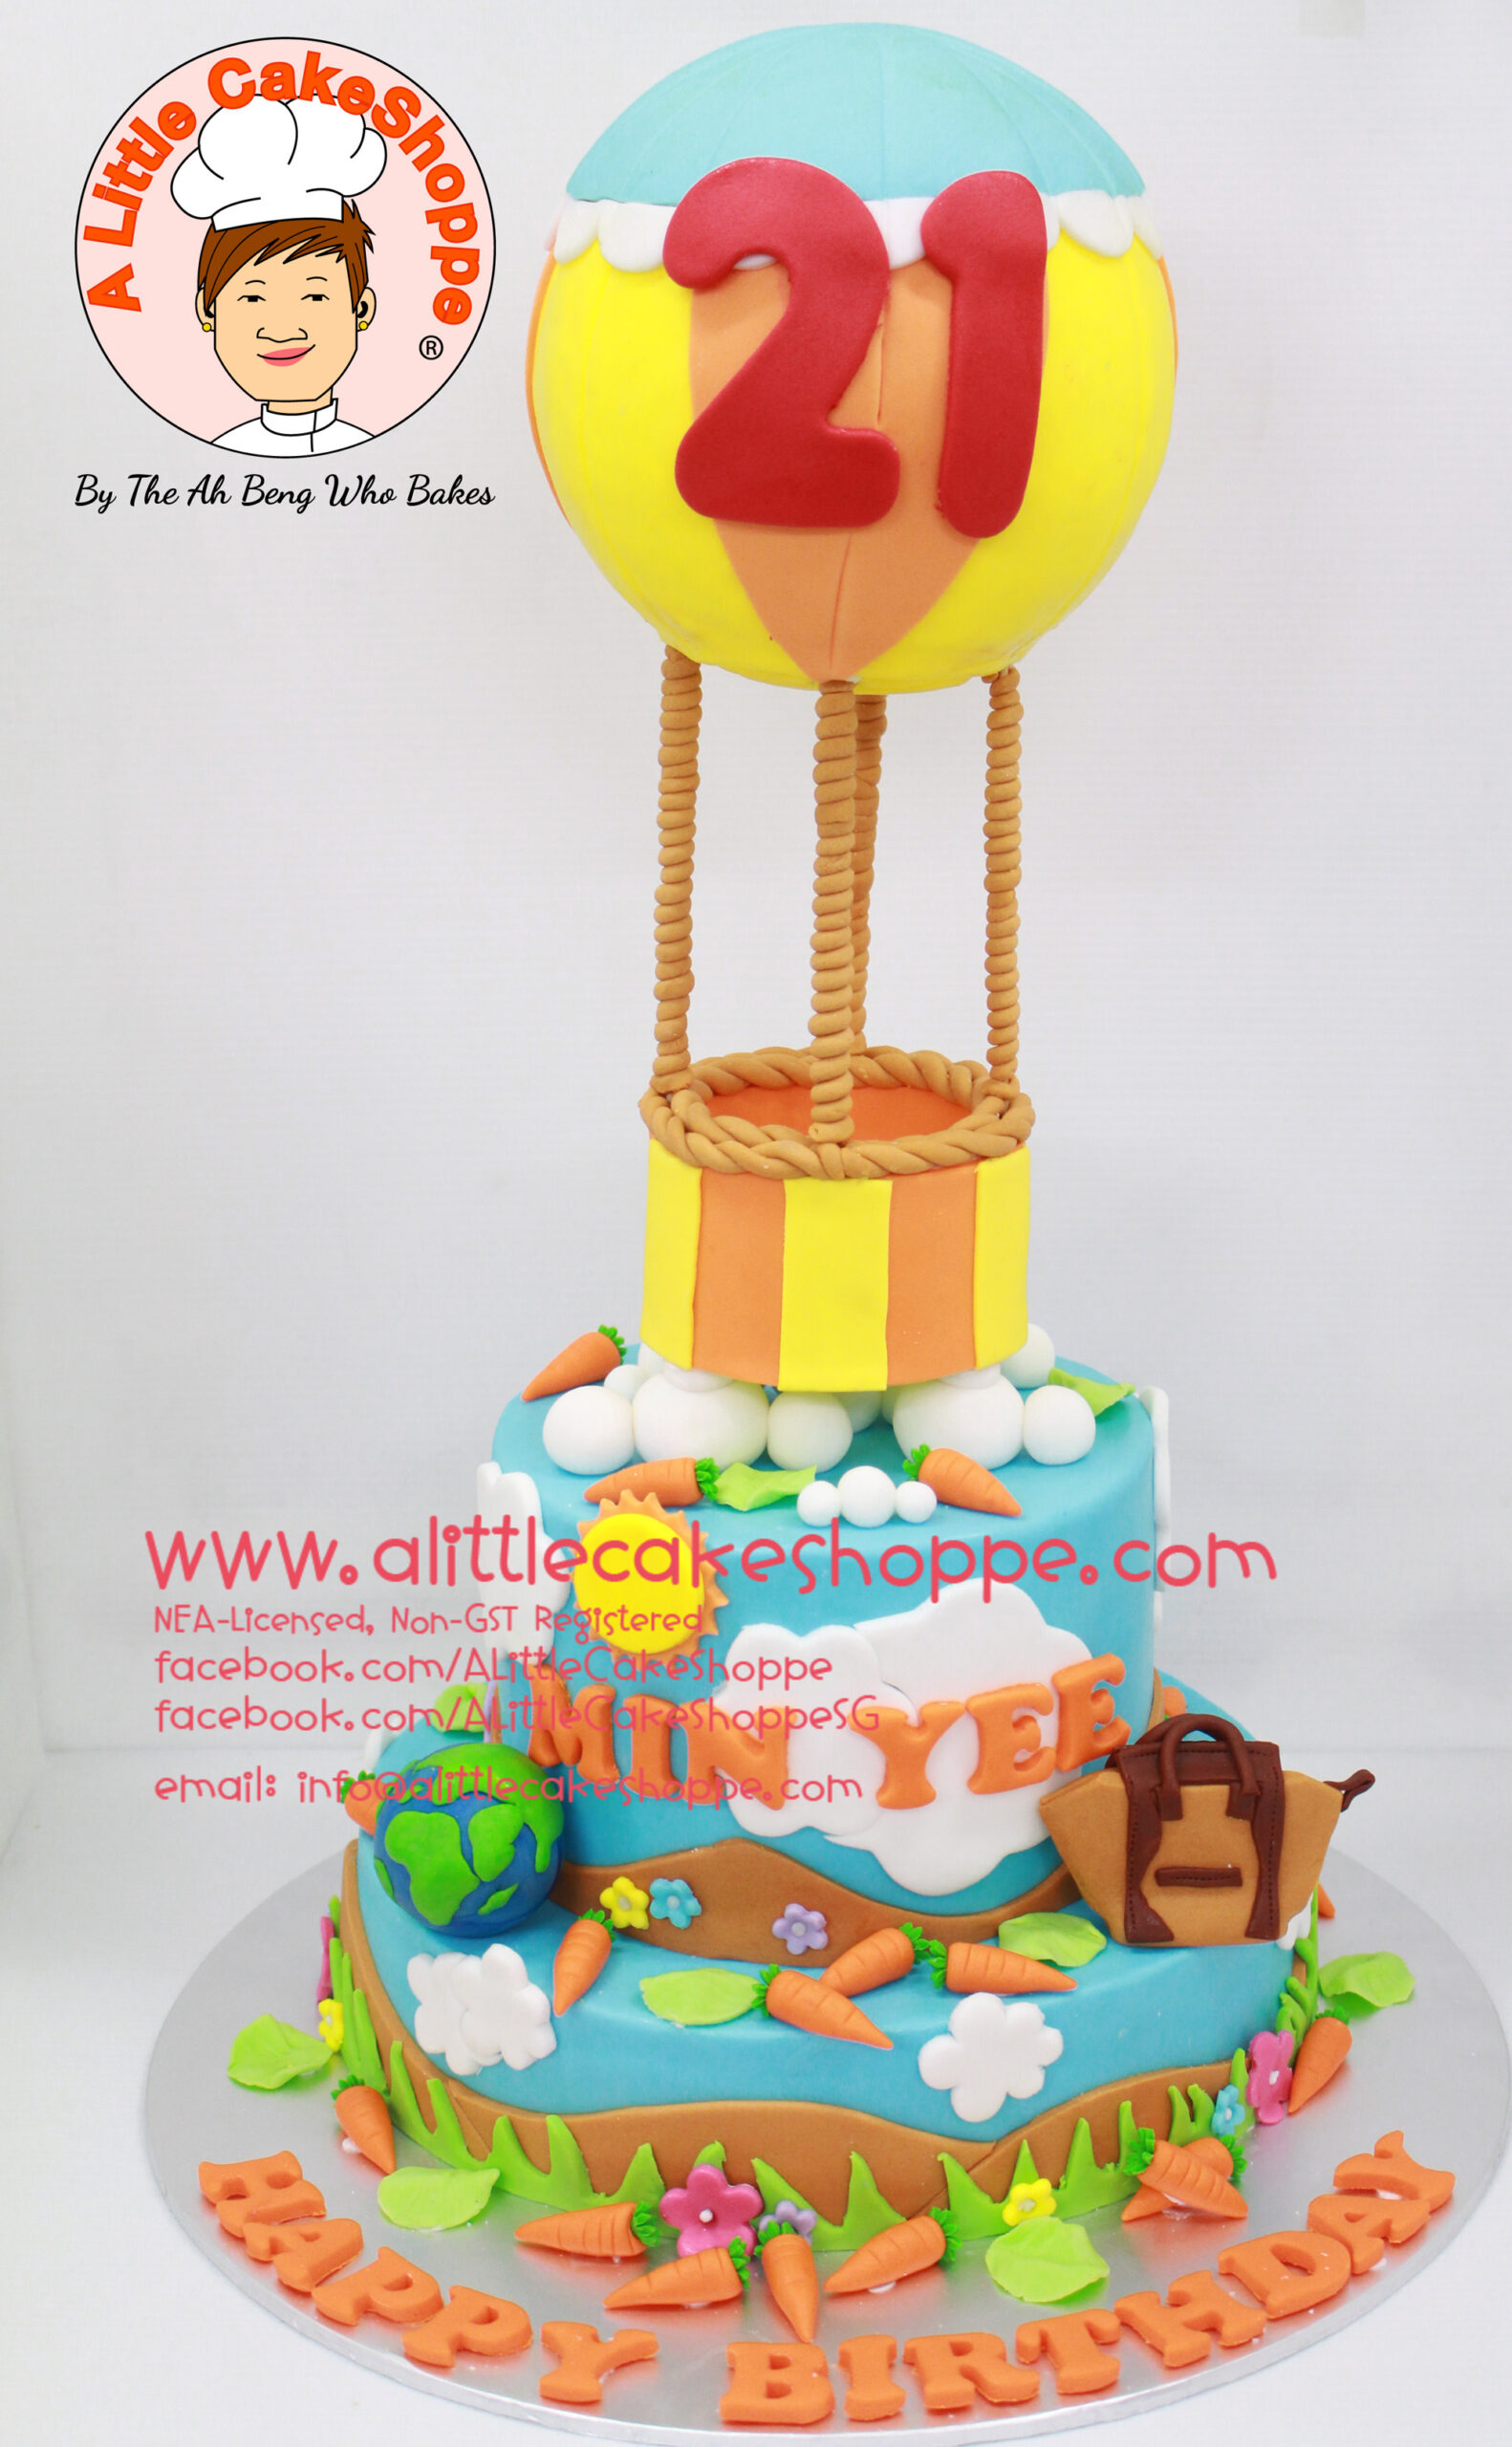 Best Customised Cake Shop Singapore custom cake 2D 3D birthday cake cupcakes desserts wedding corporate events anniversary 1st birthday 21st birthday fondant fresh cream buttercream cakes alittlecakeshoppe a little cake shoppe compliments review singapore bakers SG cake shop cakeshop ah beng who bakes balloon travel